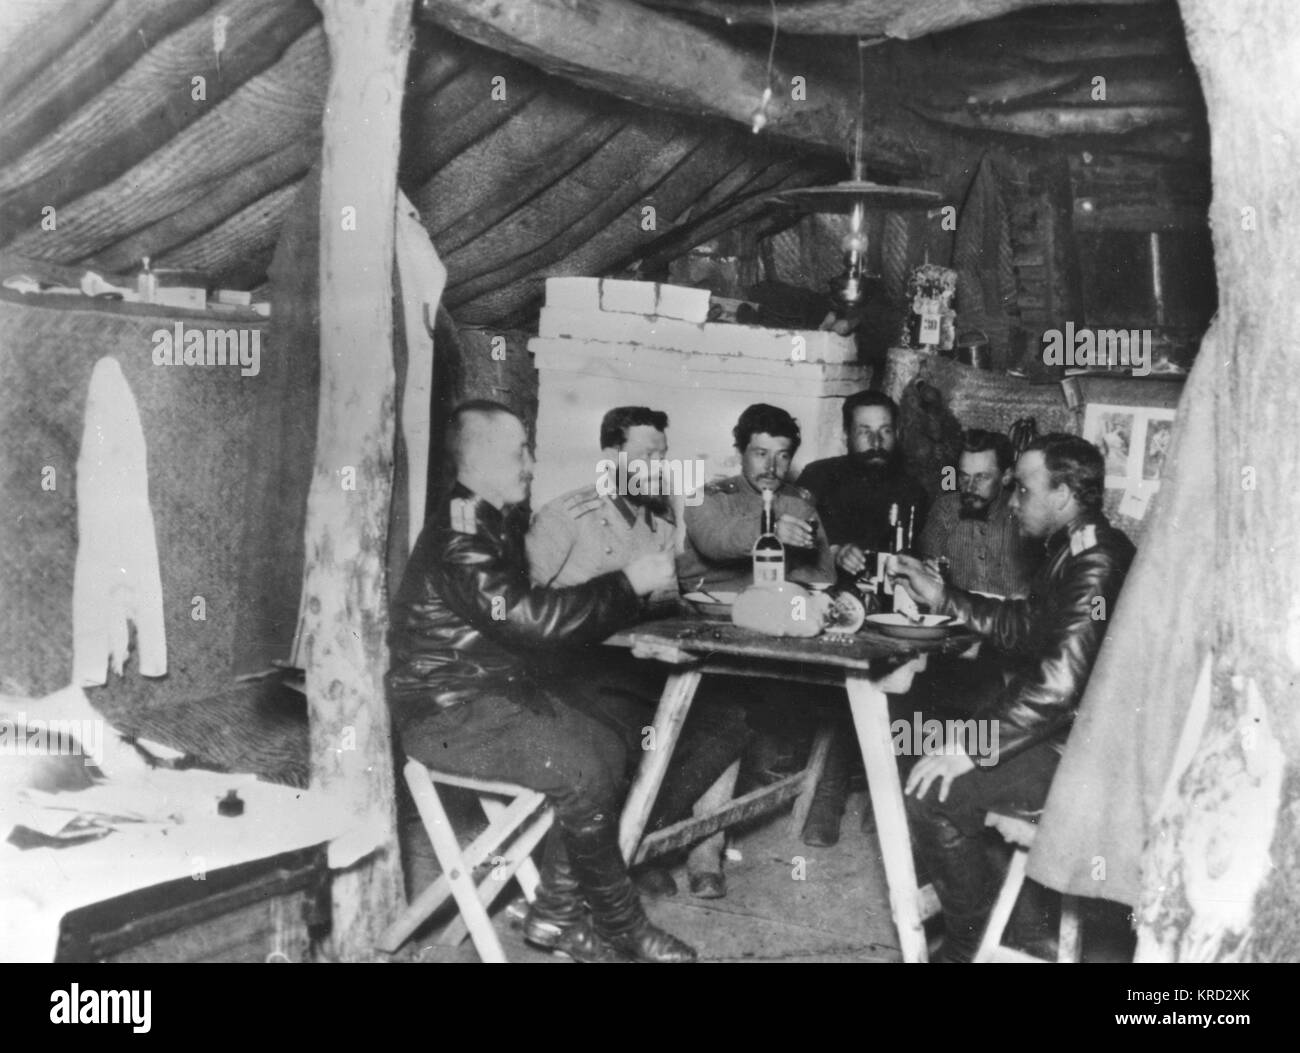 A group of six Russian officers relax in their dugout during the second and final year of the Russo-Japanese War. - Stock Image